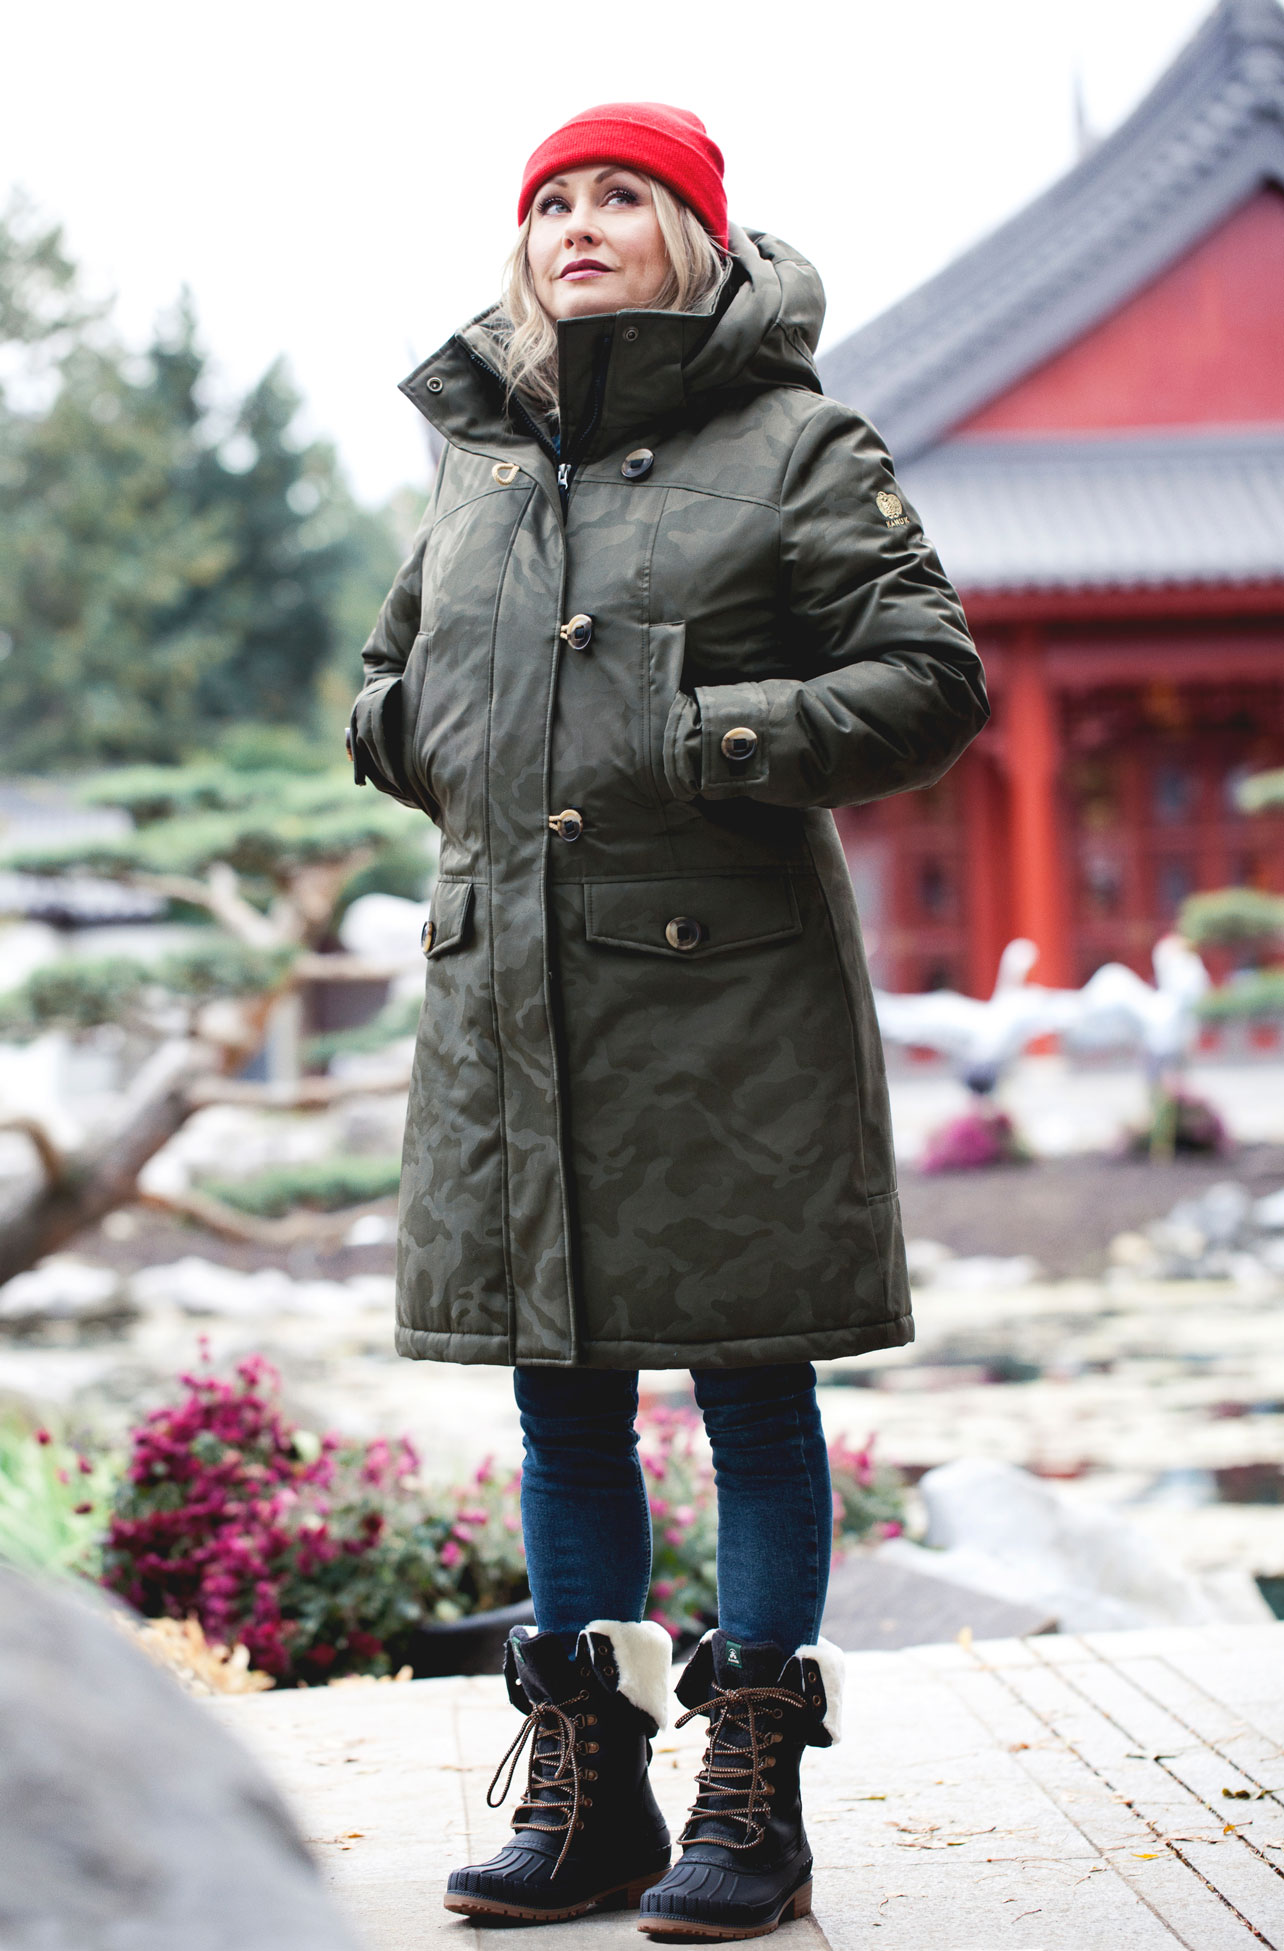 Fashion and lifestyle photographer in Montreal. Photo of the new Kanuk coat and kamik winter boots collection.